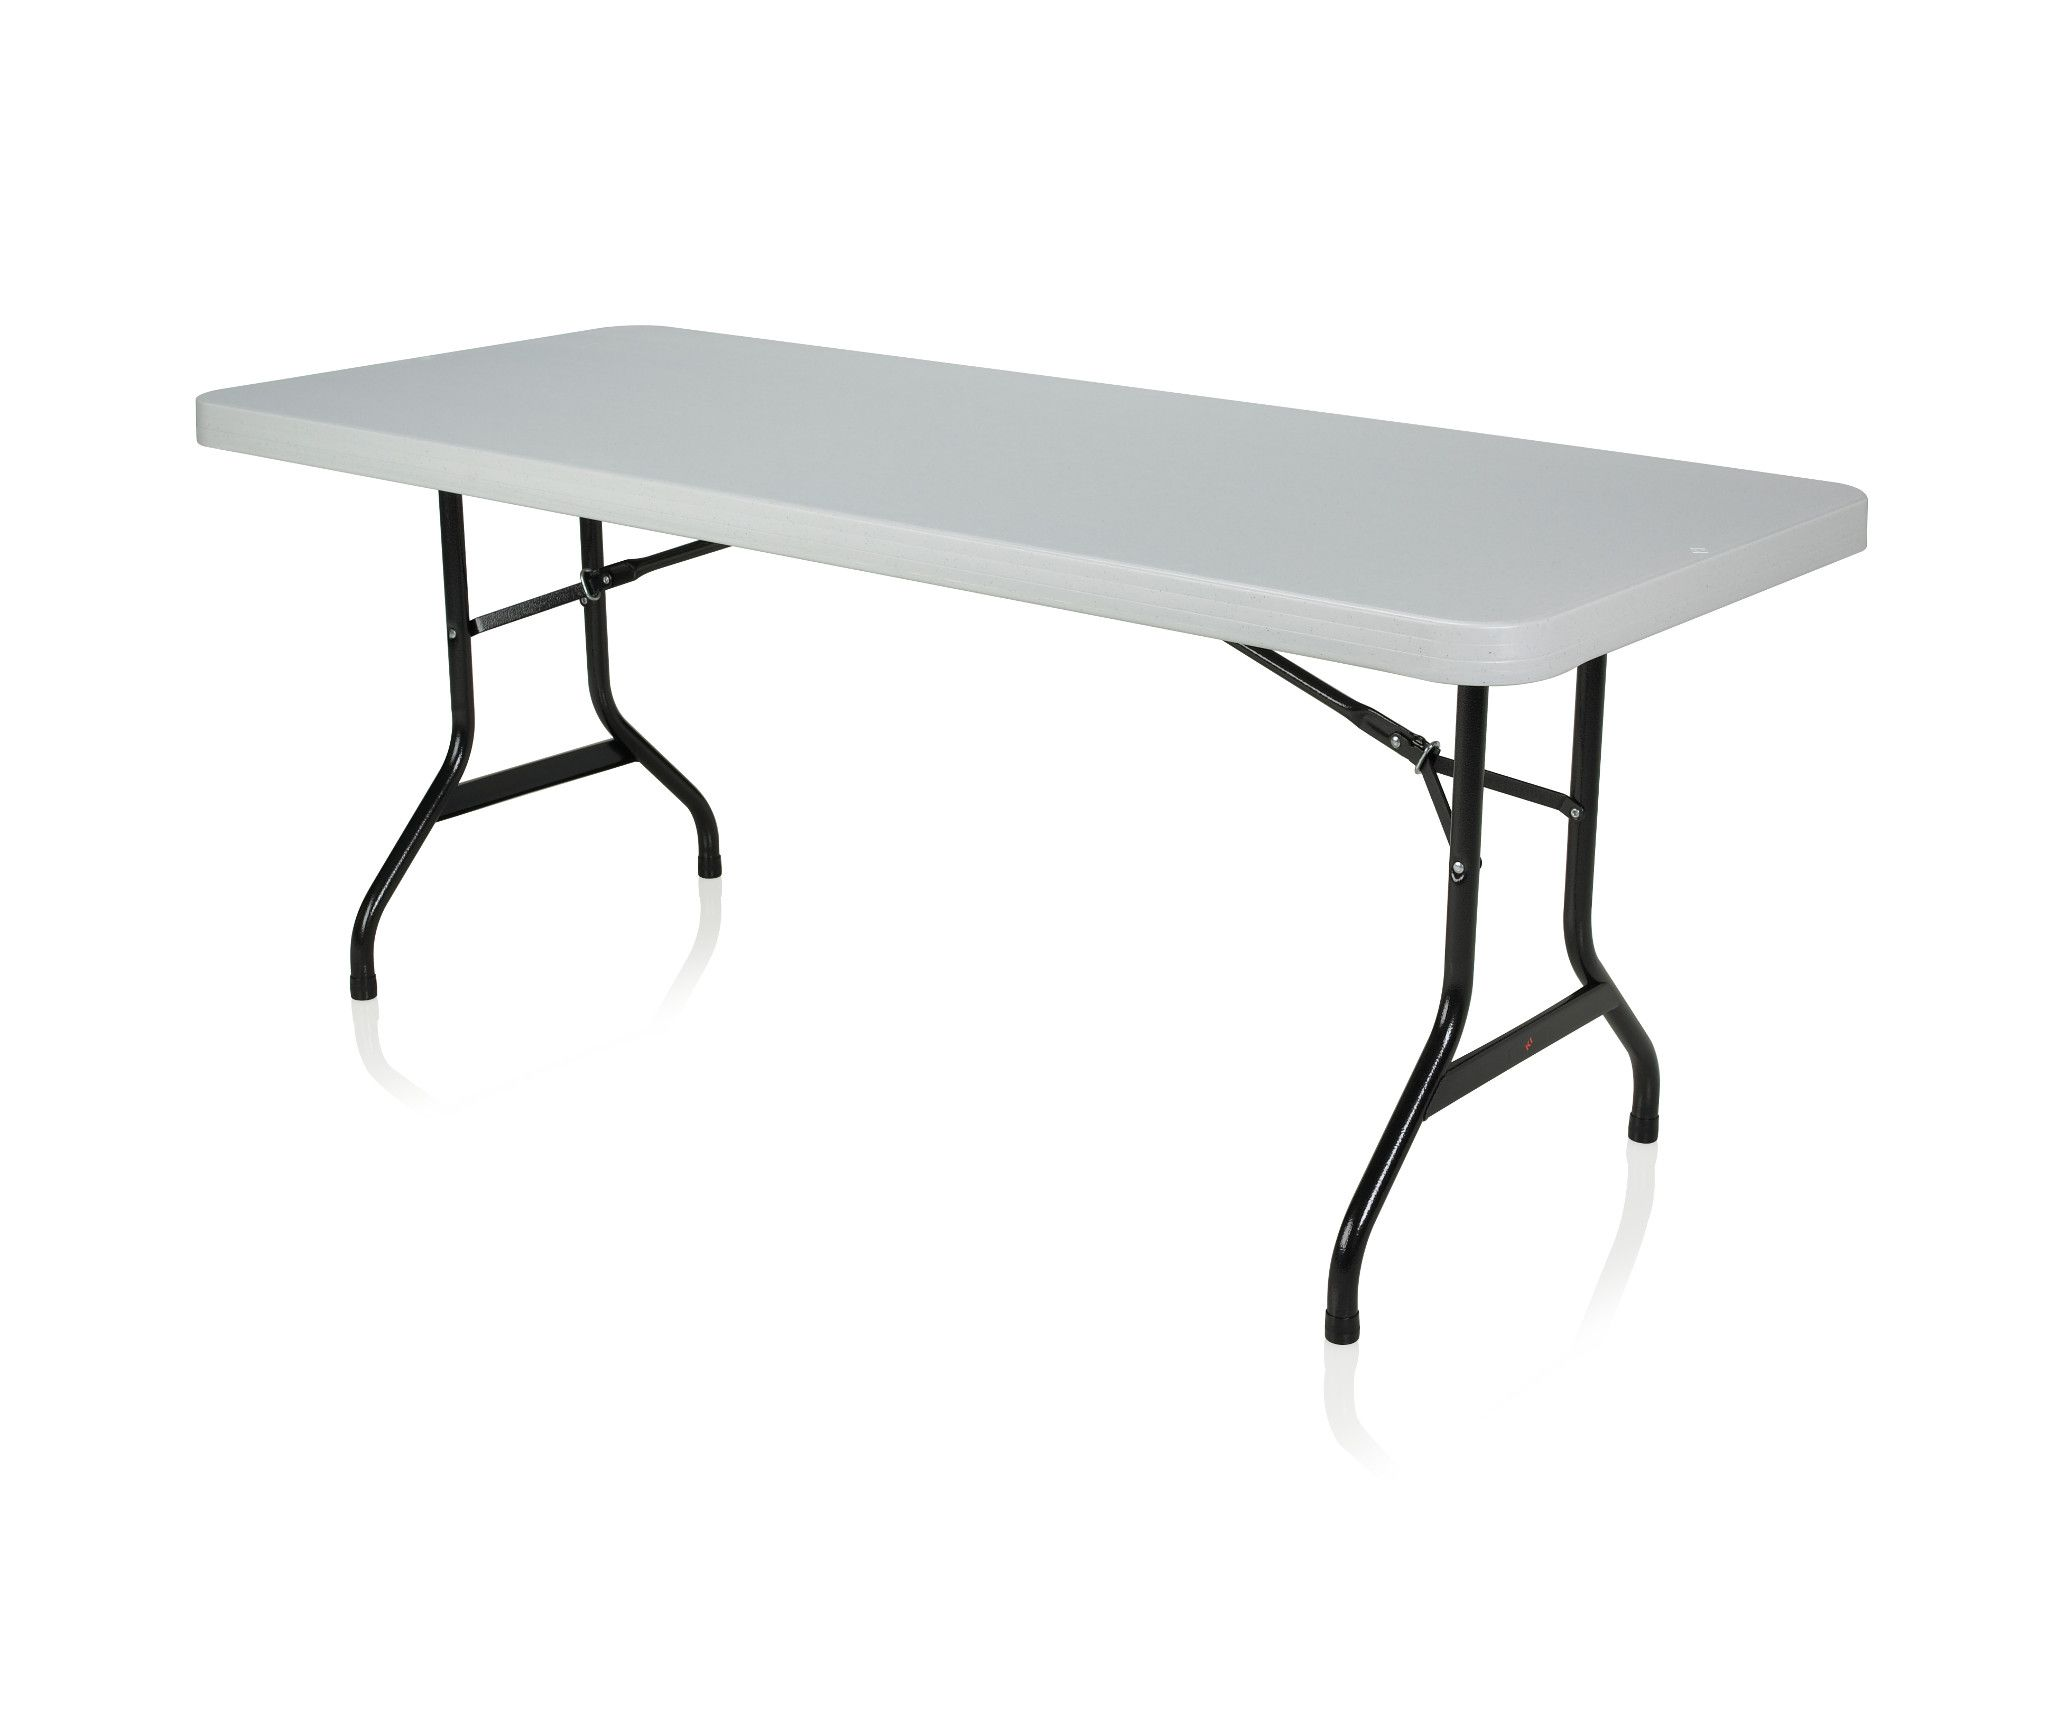 KI ValueLite Rectangular Folding Table